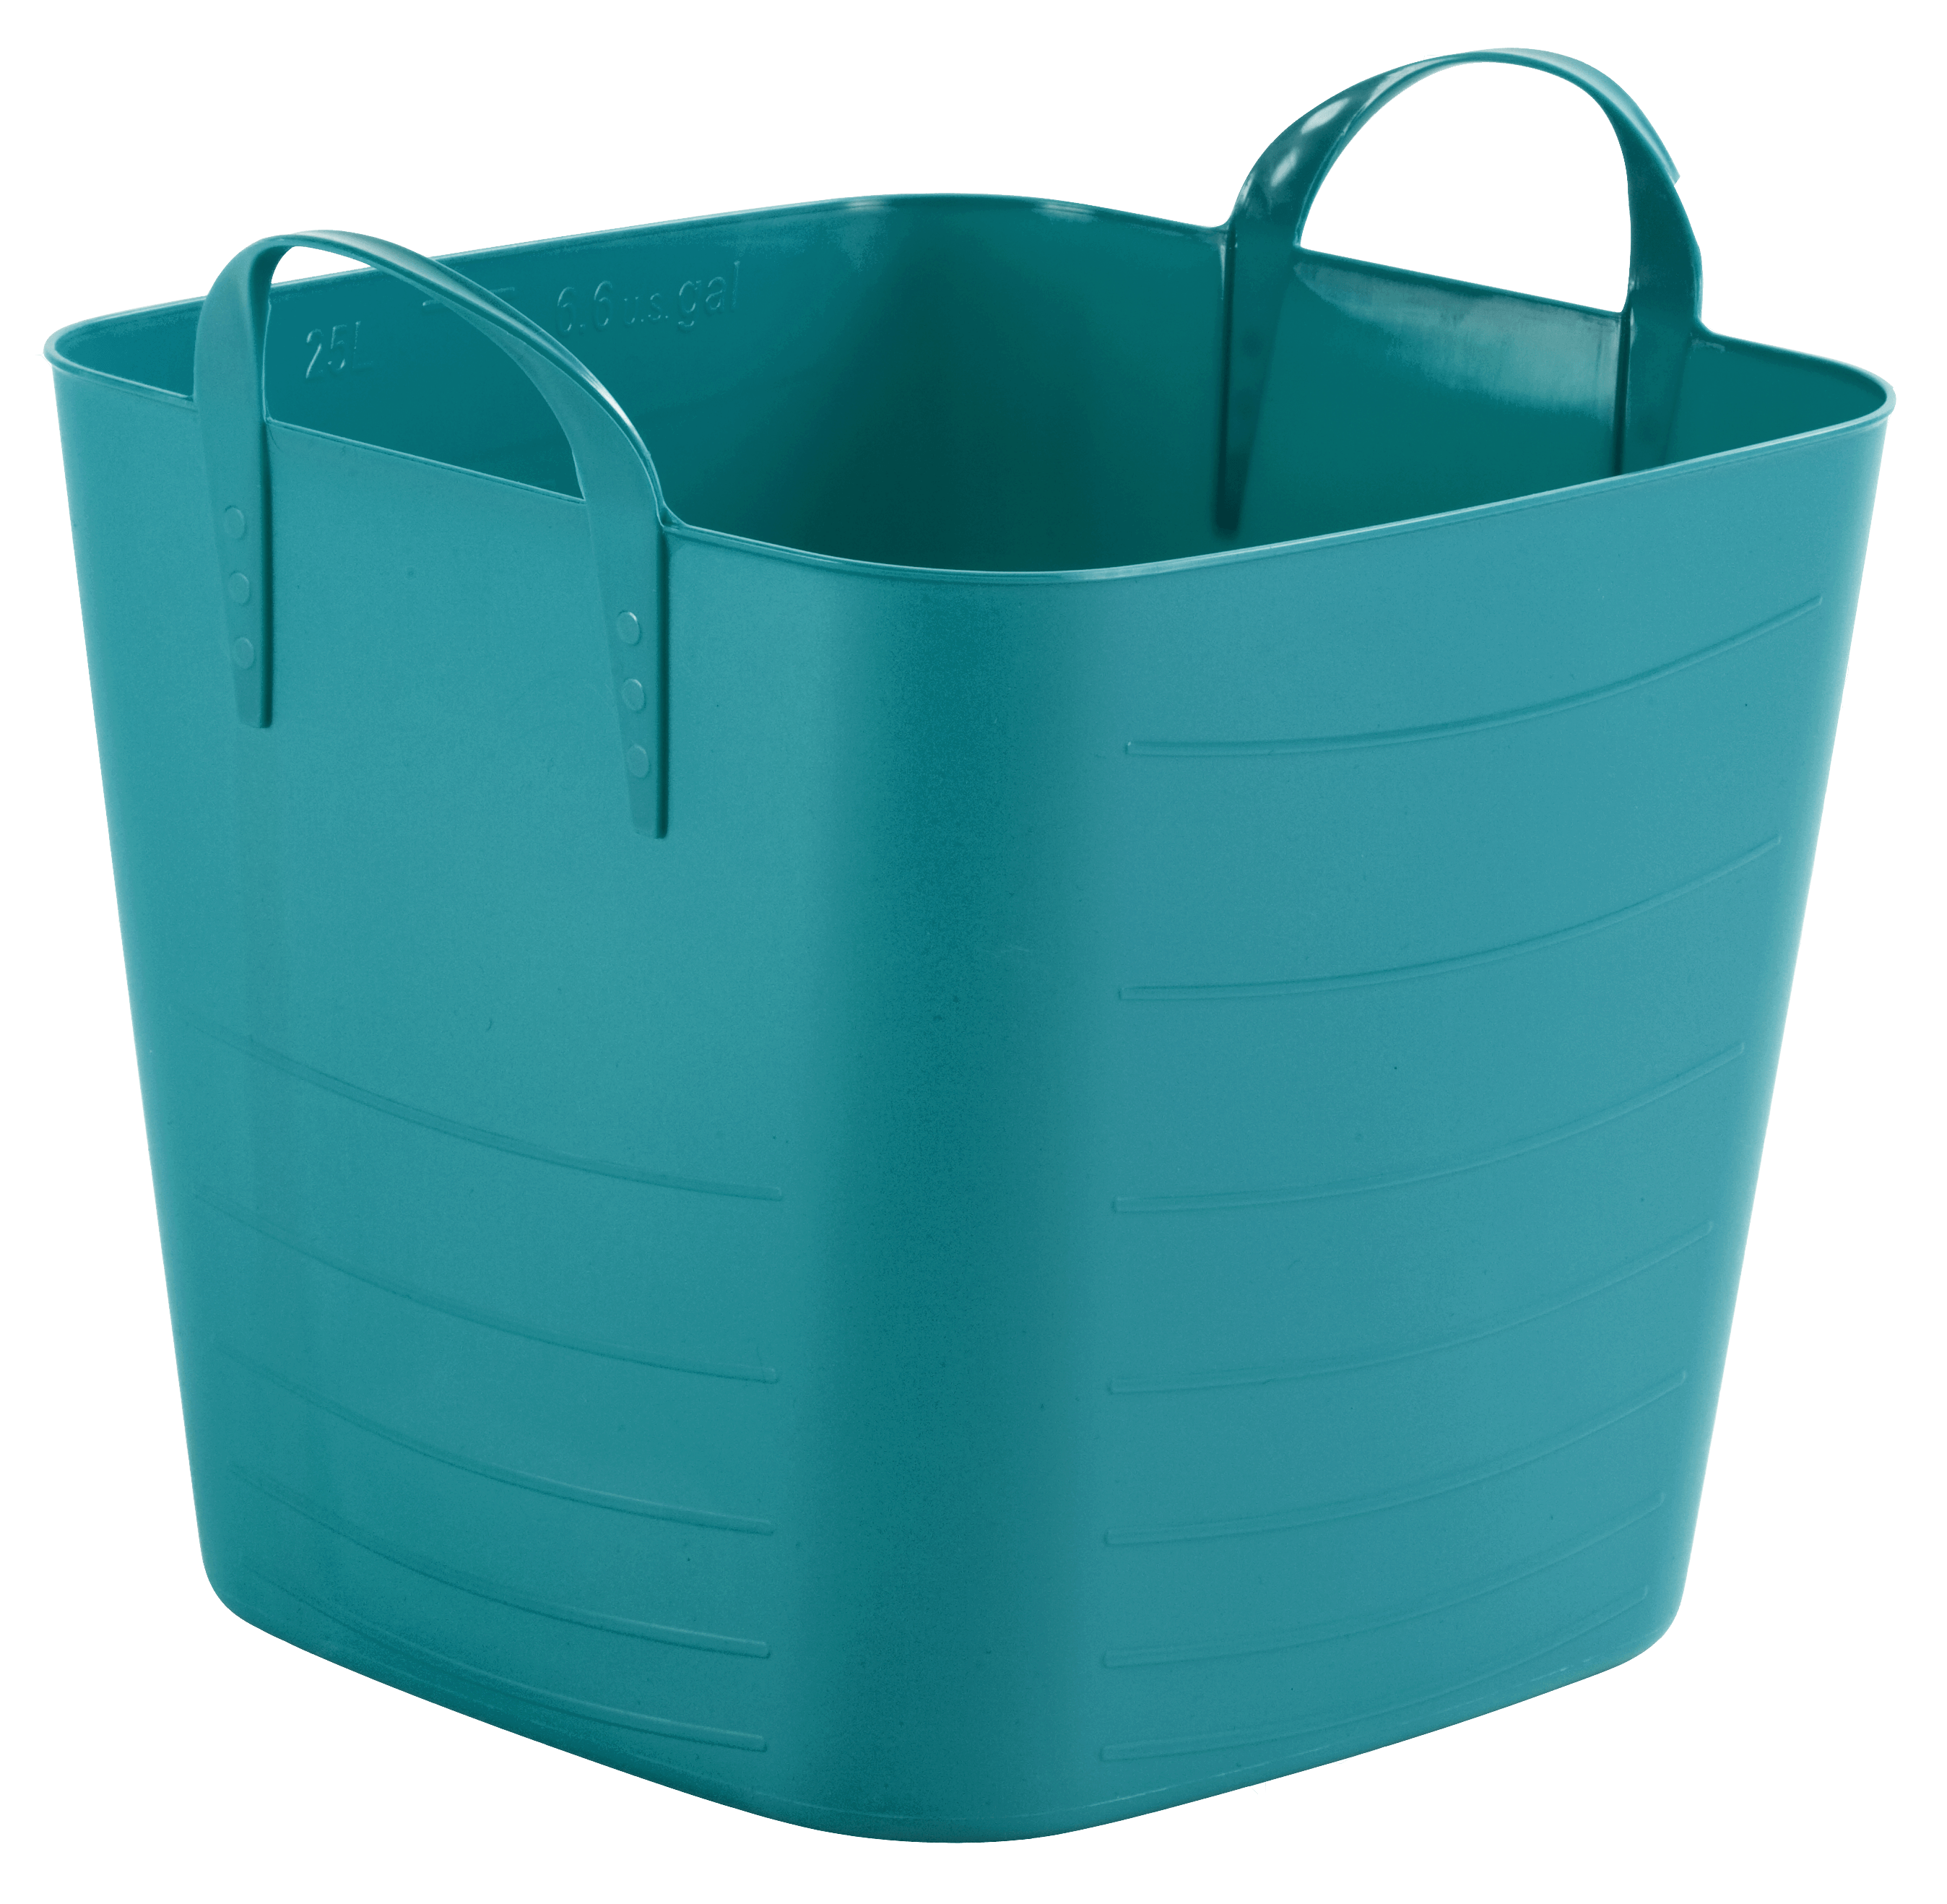 Mainstays 25-Liter Turquoise Flexible Tub